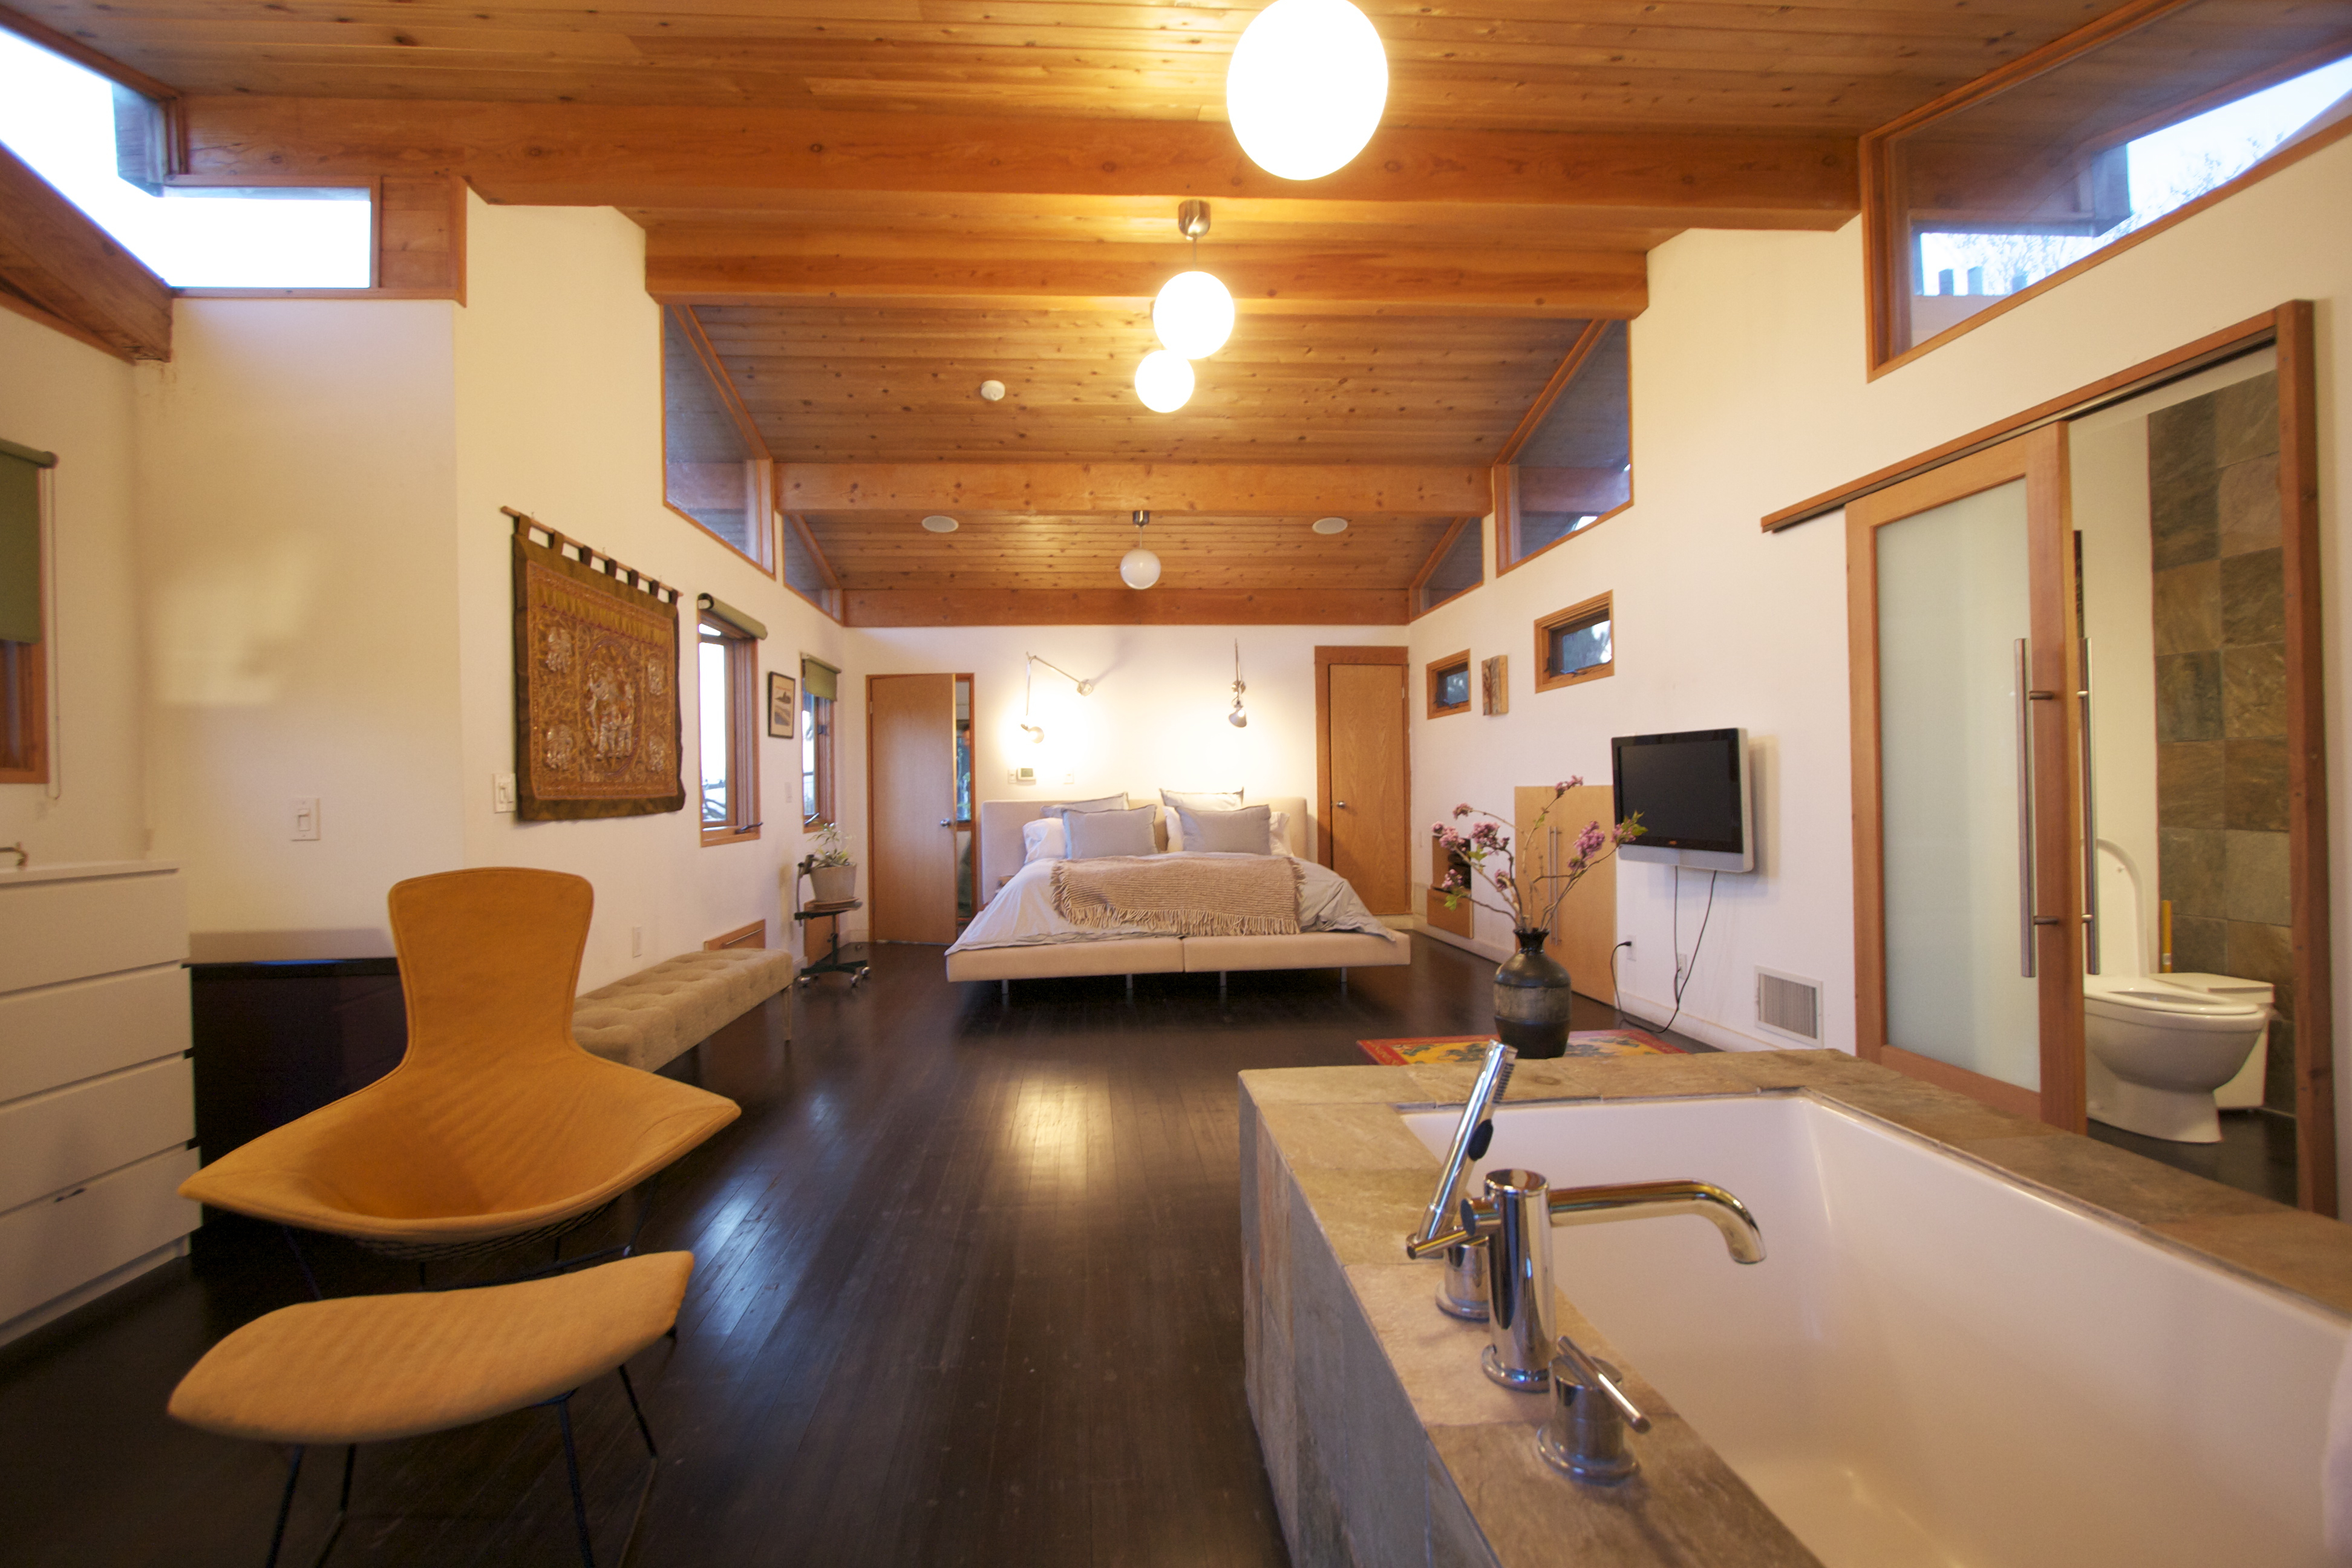 Post and Beam Vaulted Bedroom | Flickr - Photo Sharing!